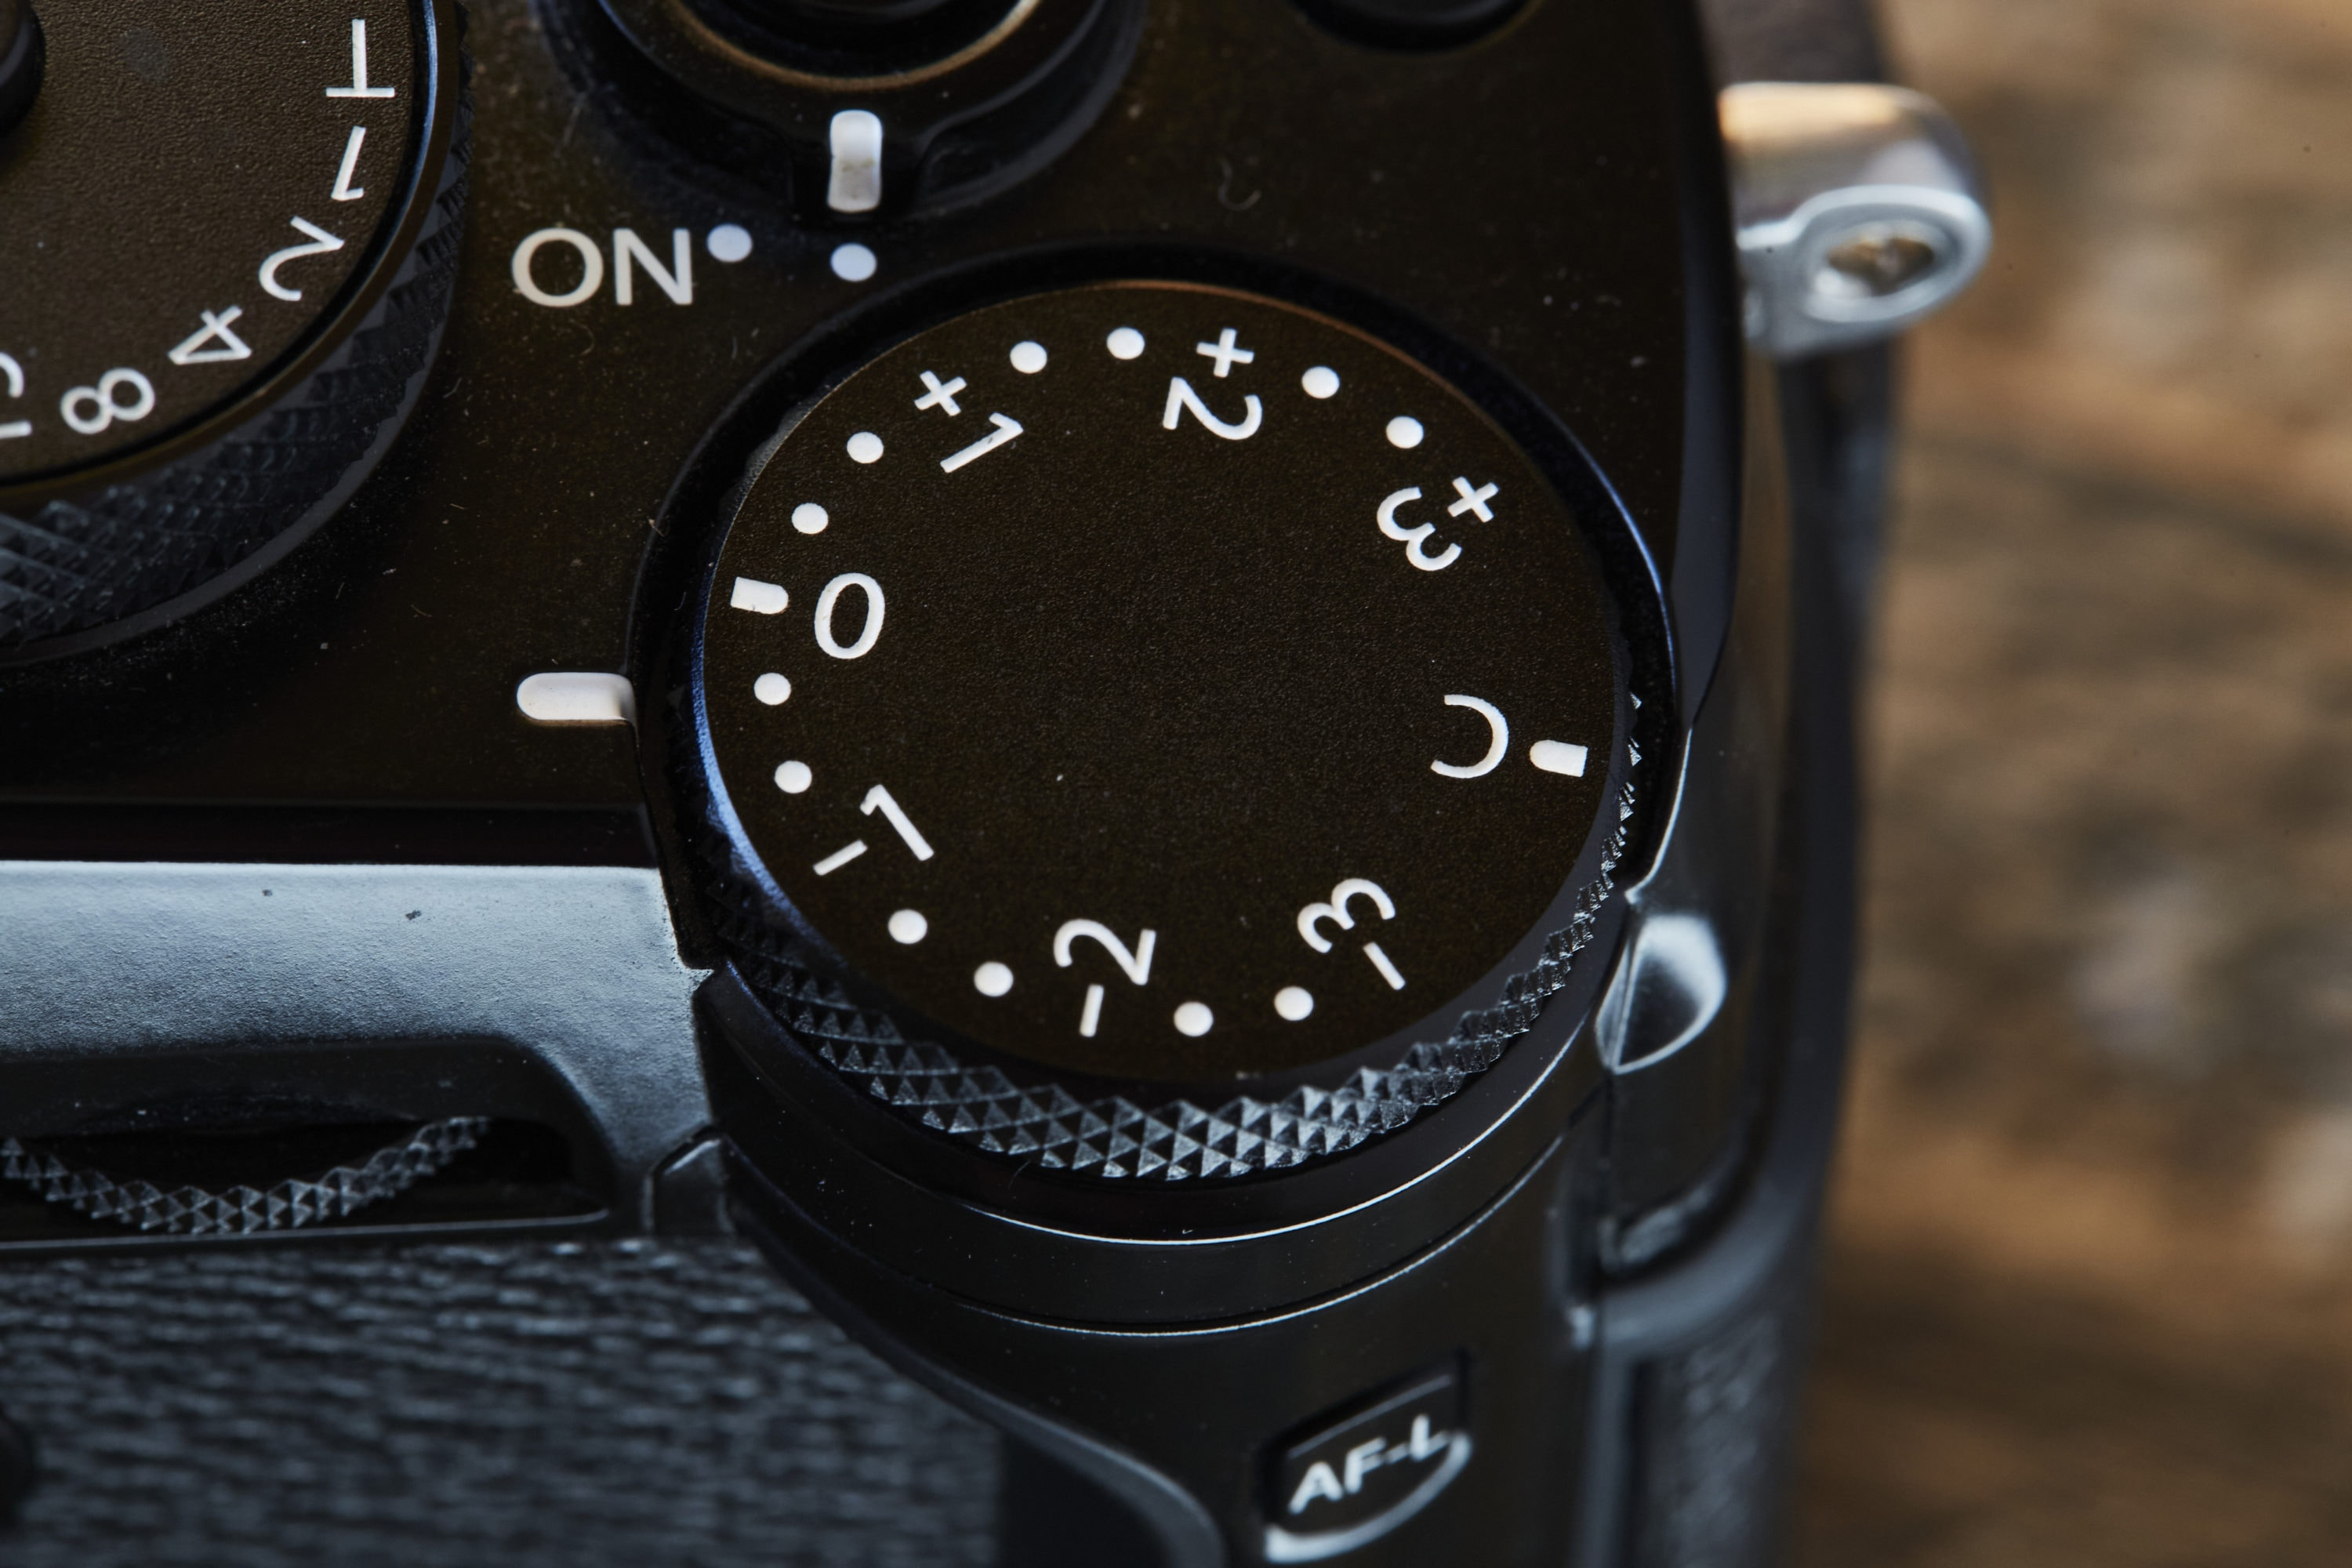 Exposure compensation dial of Fuji X-Pro2